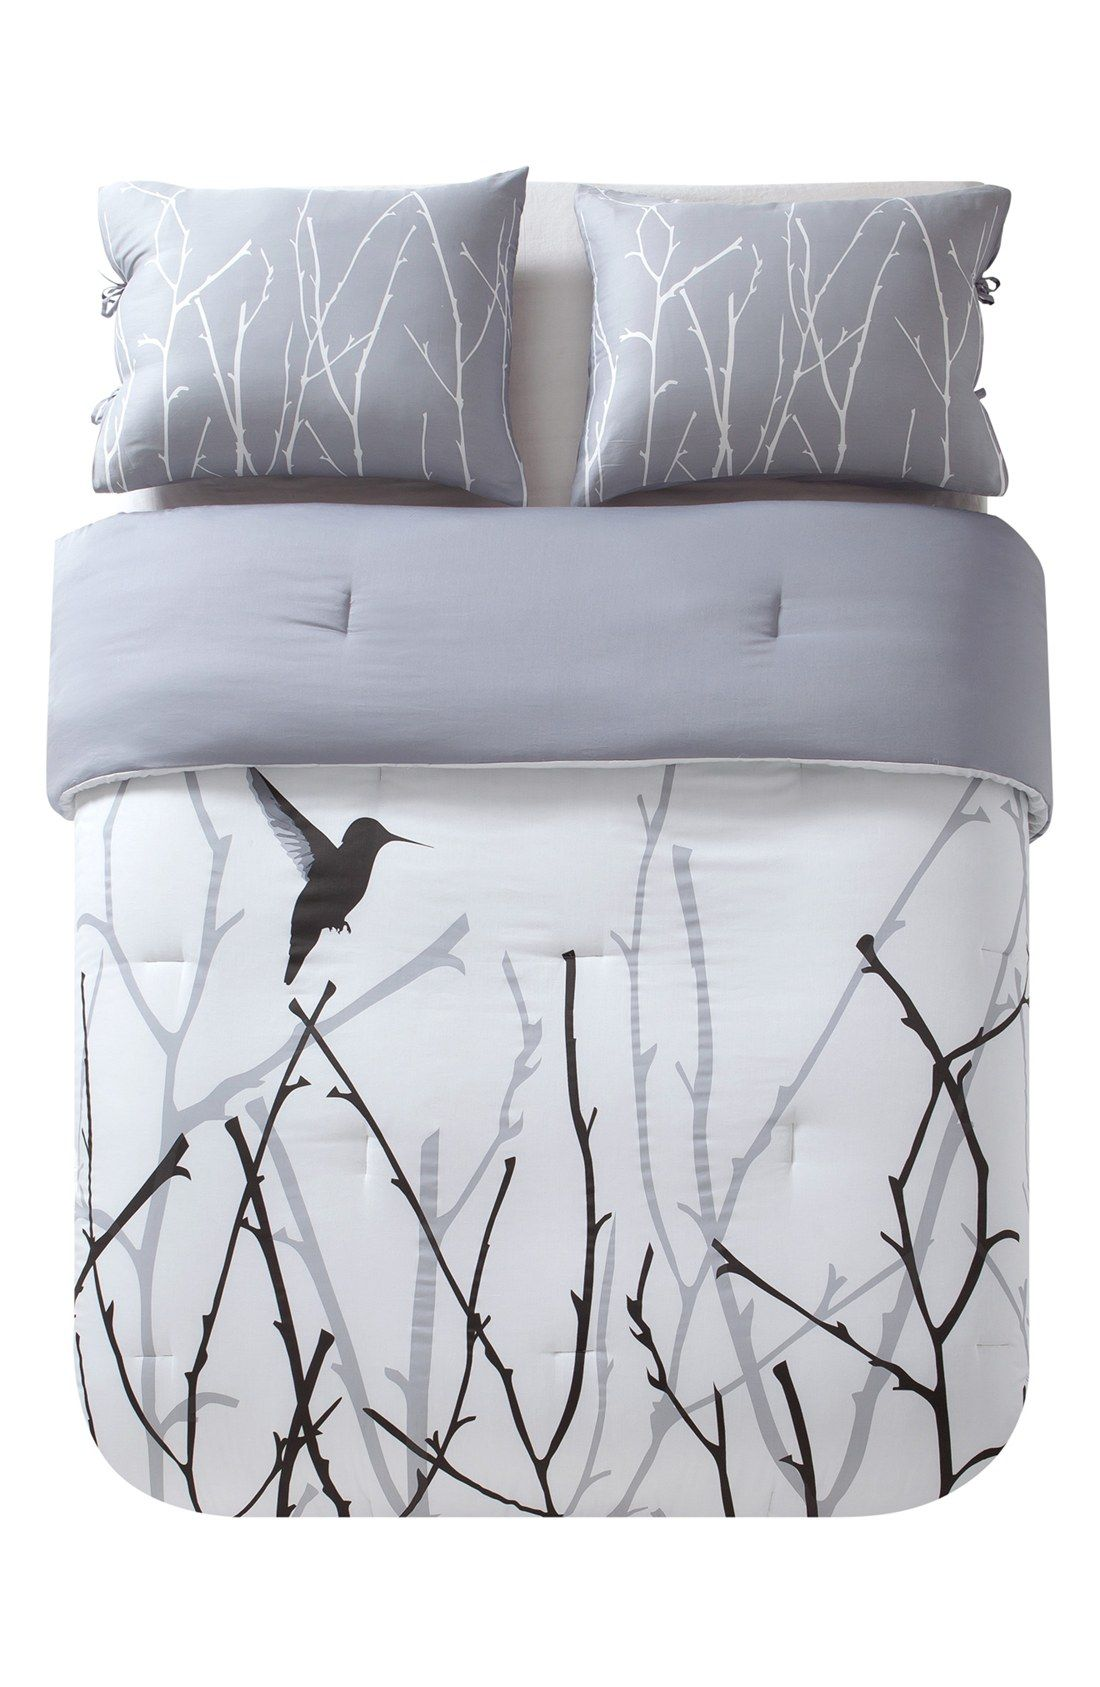 Free Shipping And Returns On Kensie Vicki Duvet Cover Set At Nordstrom